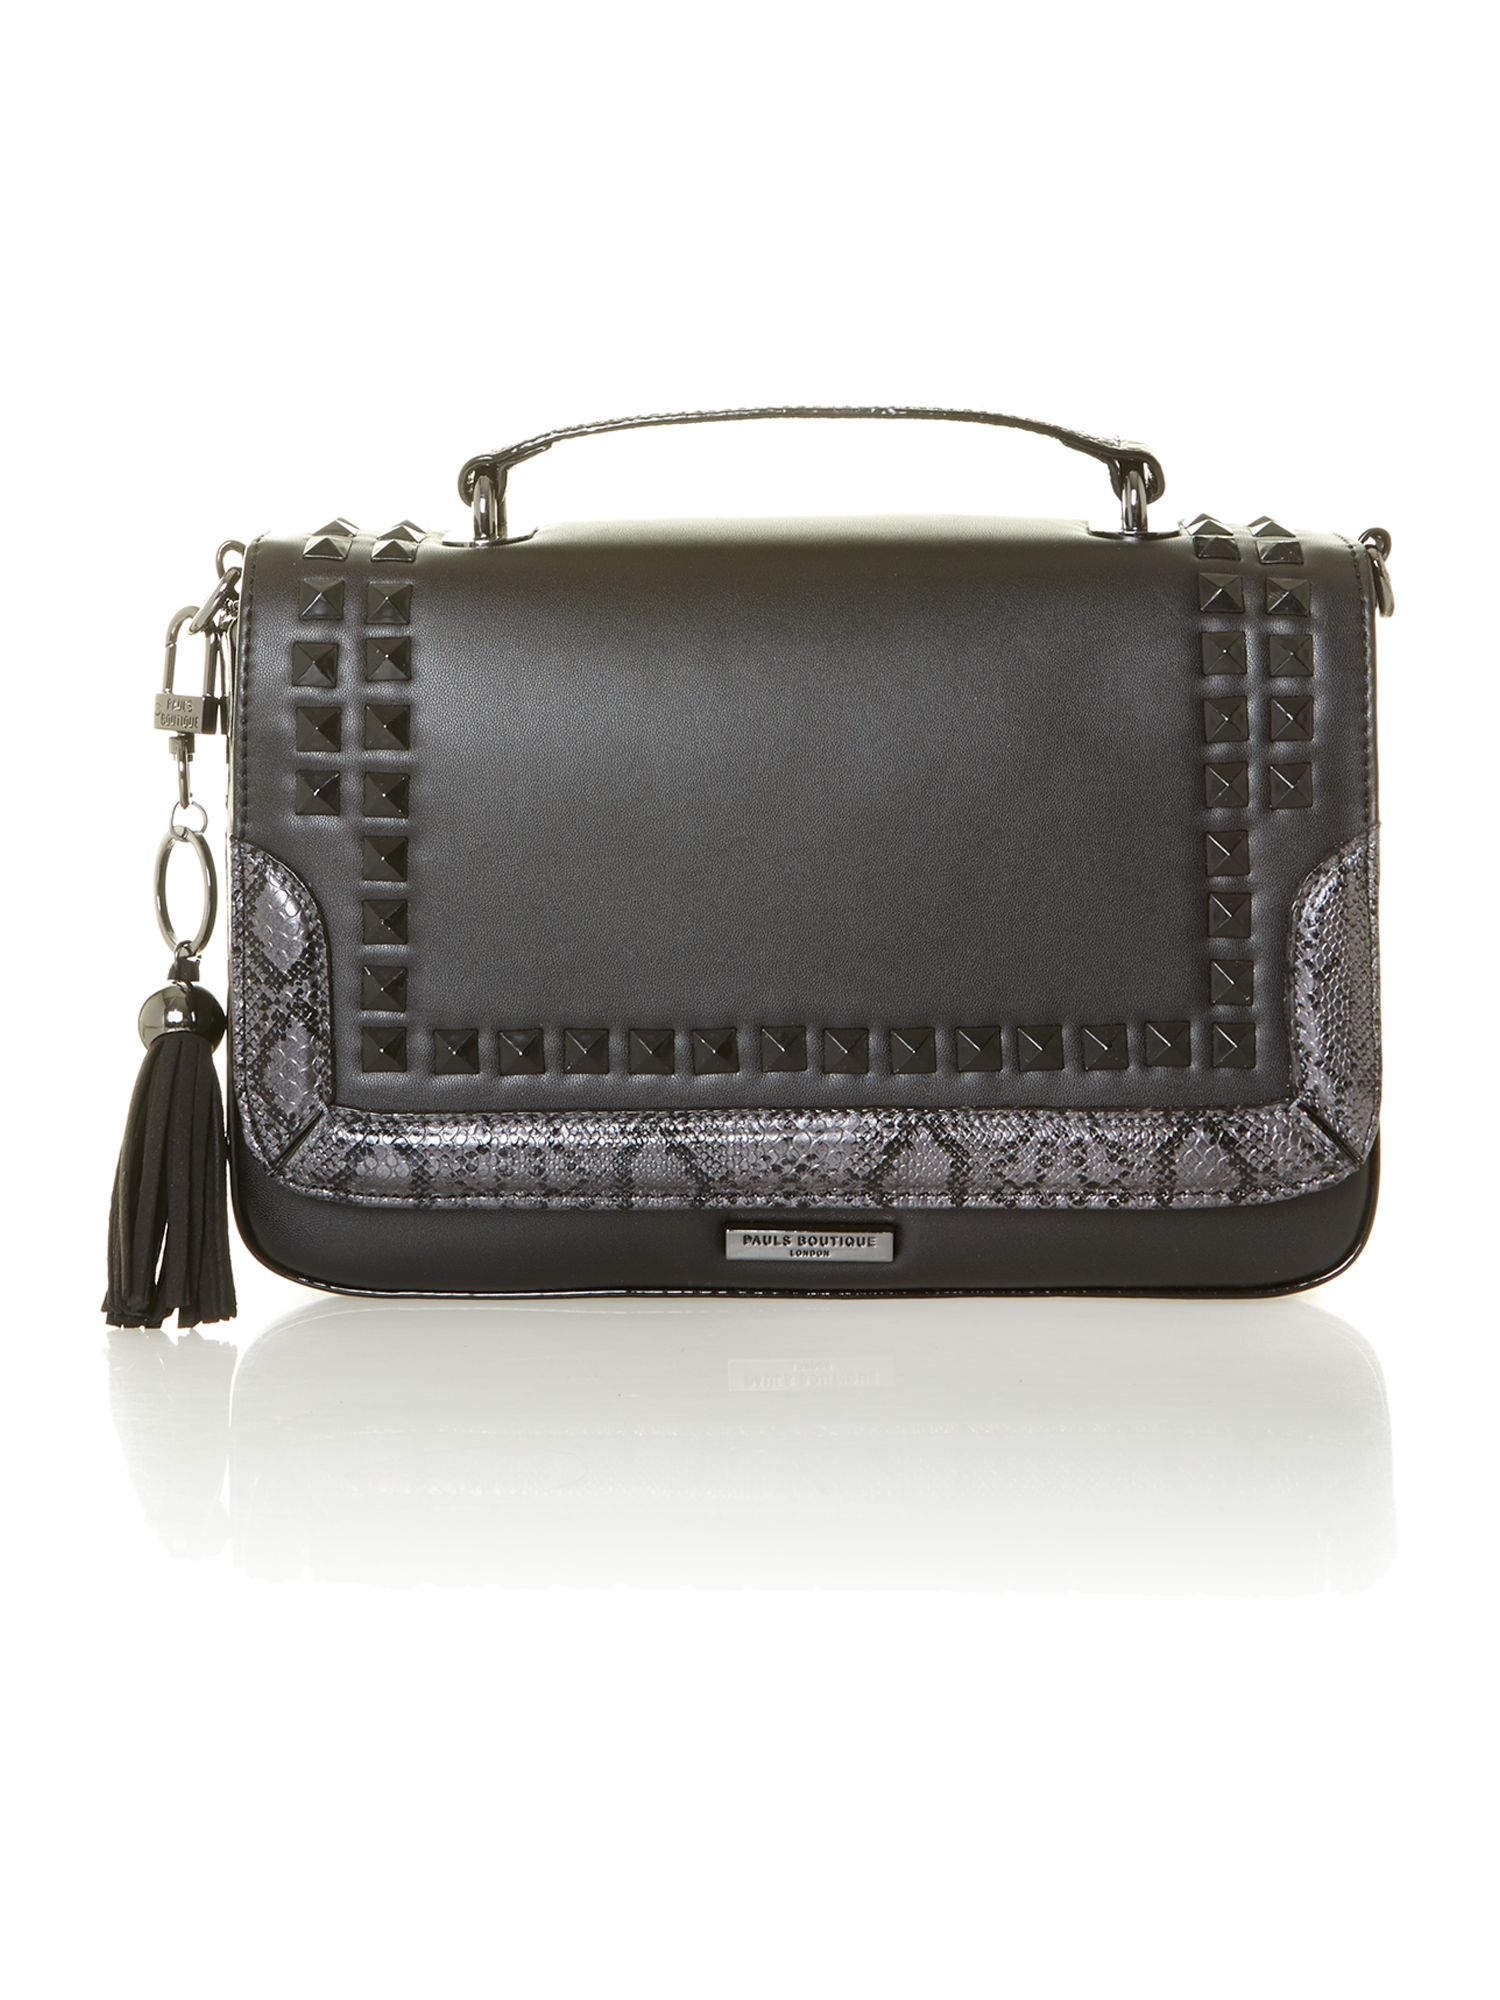 Nicole tonal stud detail shoulder bag